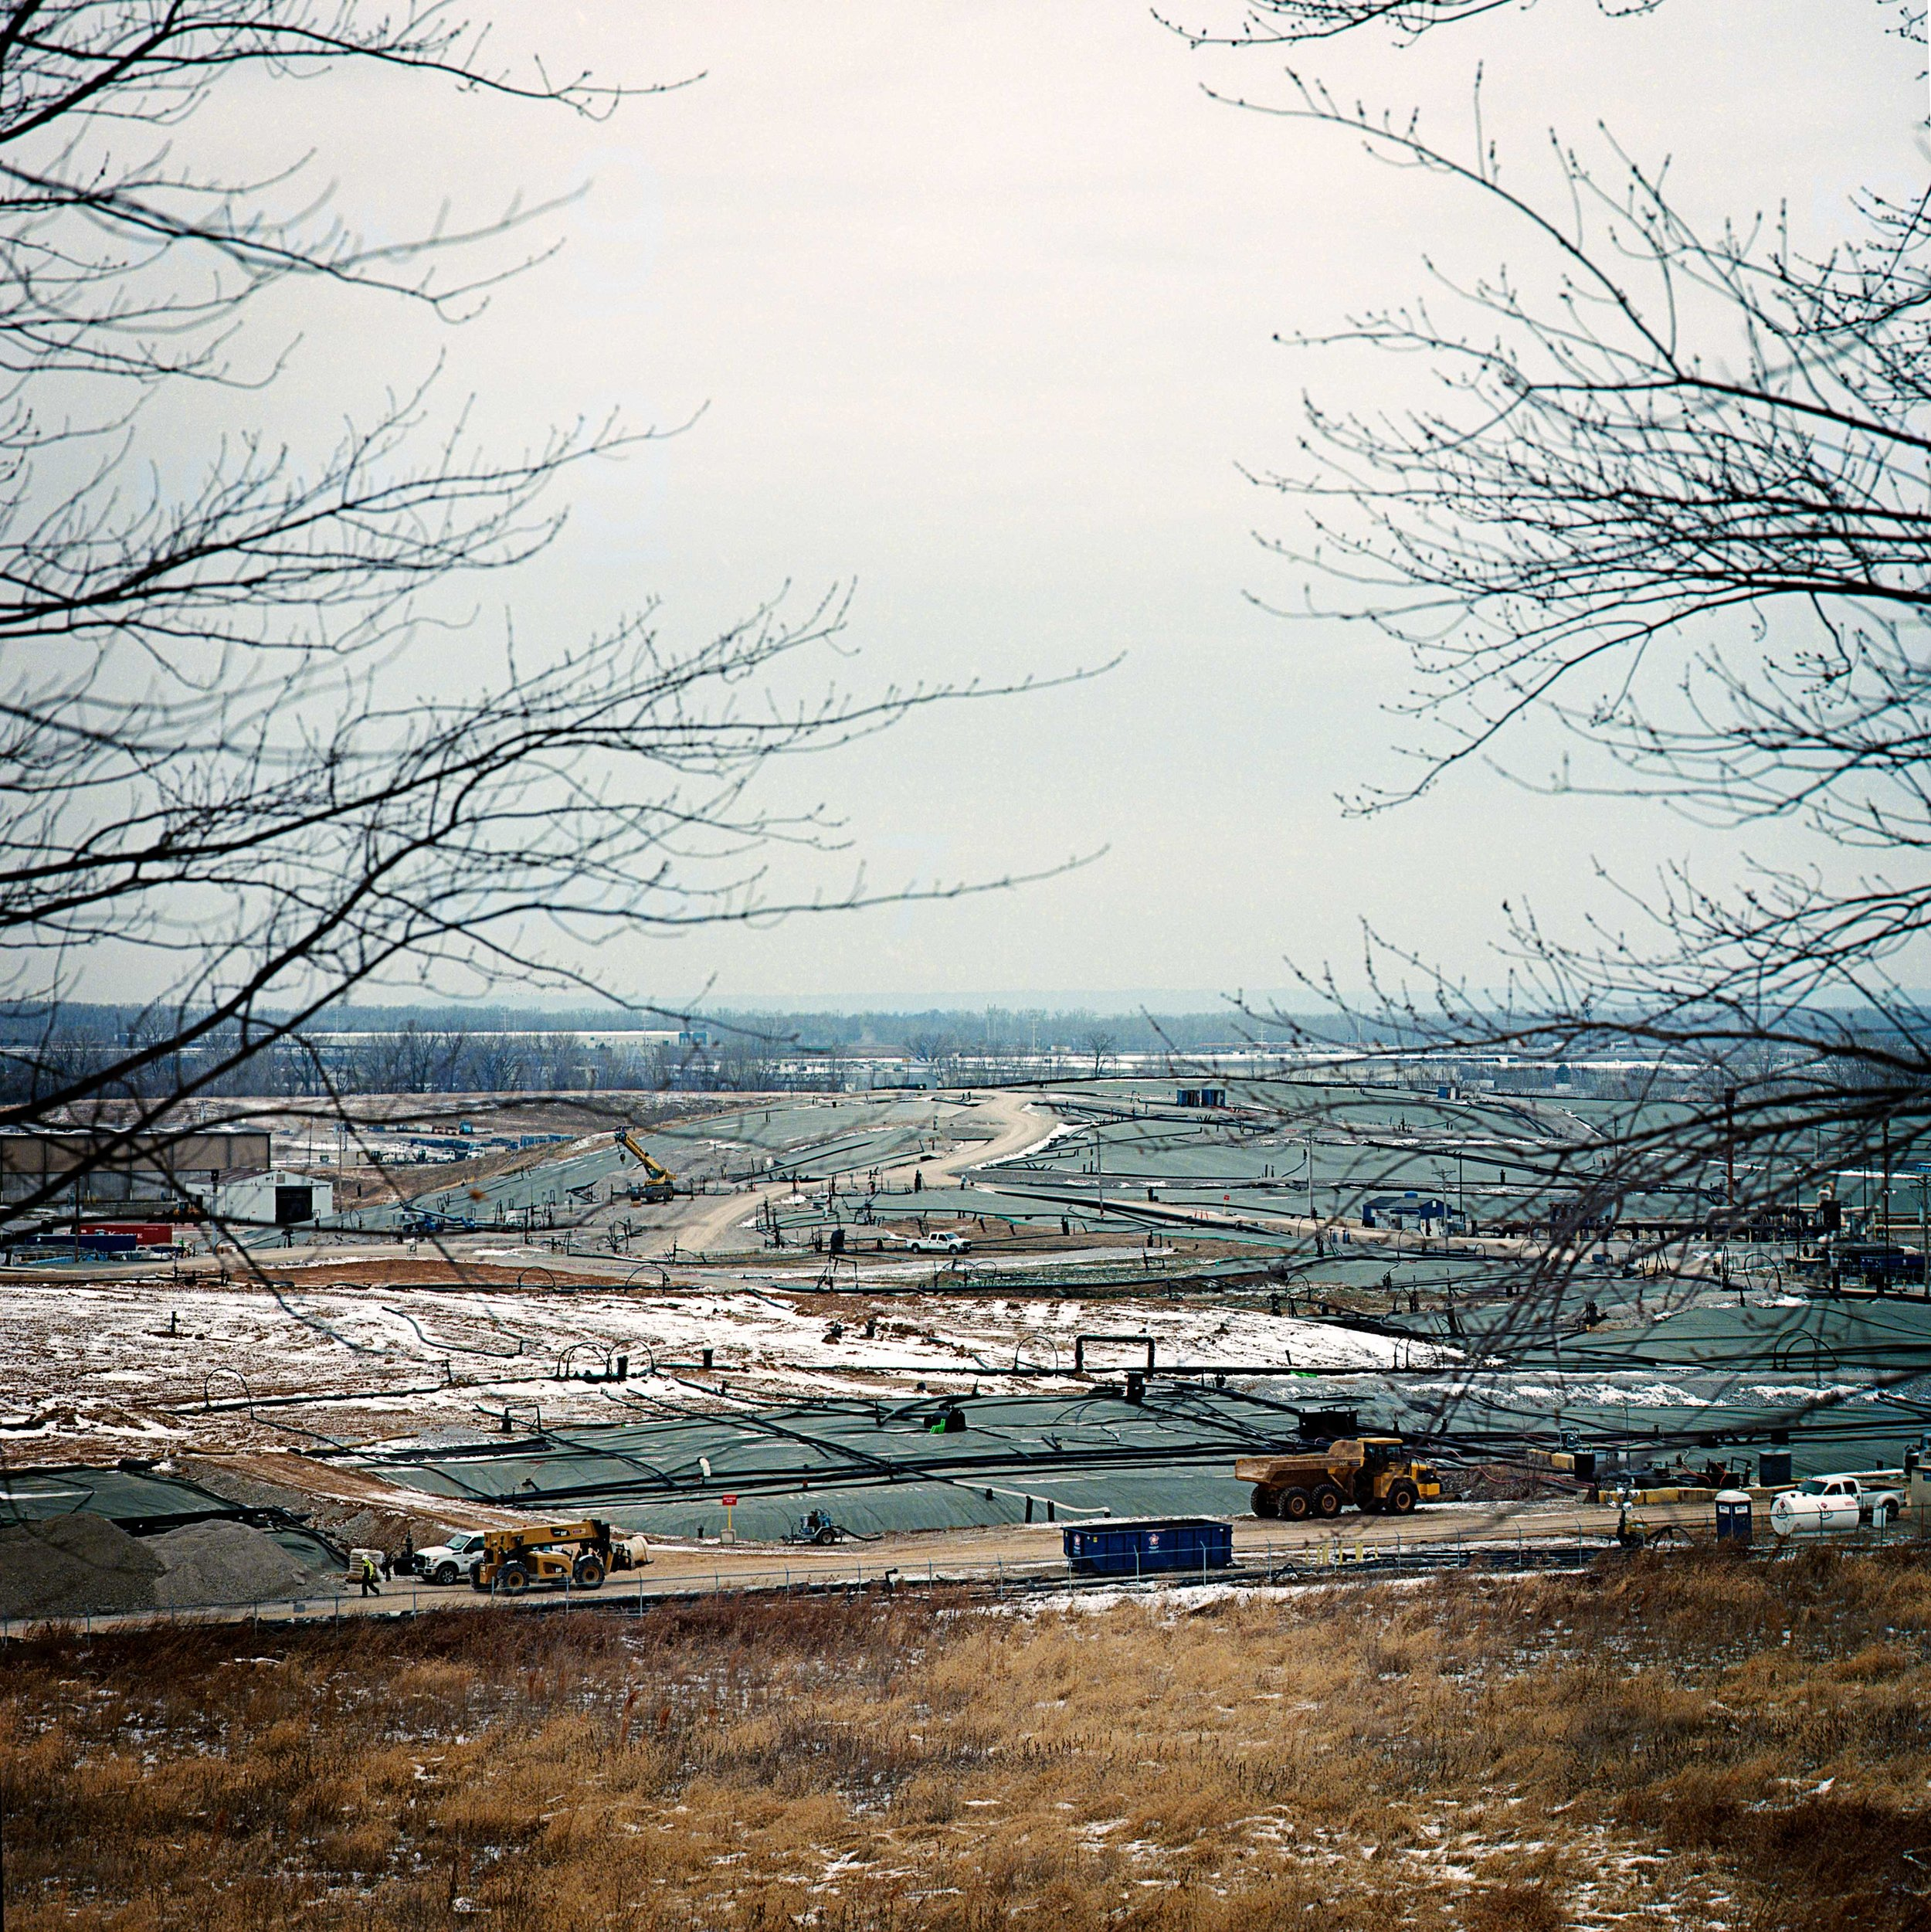 Bridgeton Sanitary Landfill, Dec. 27, 2017 in St. Louis, Missouri. An underground fire was detected underneath the landfill in 2010 and still burns today. There have been concerns as radioactive waste is also buried nearby the landfill.